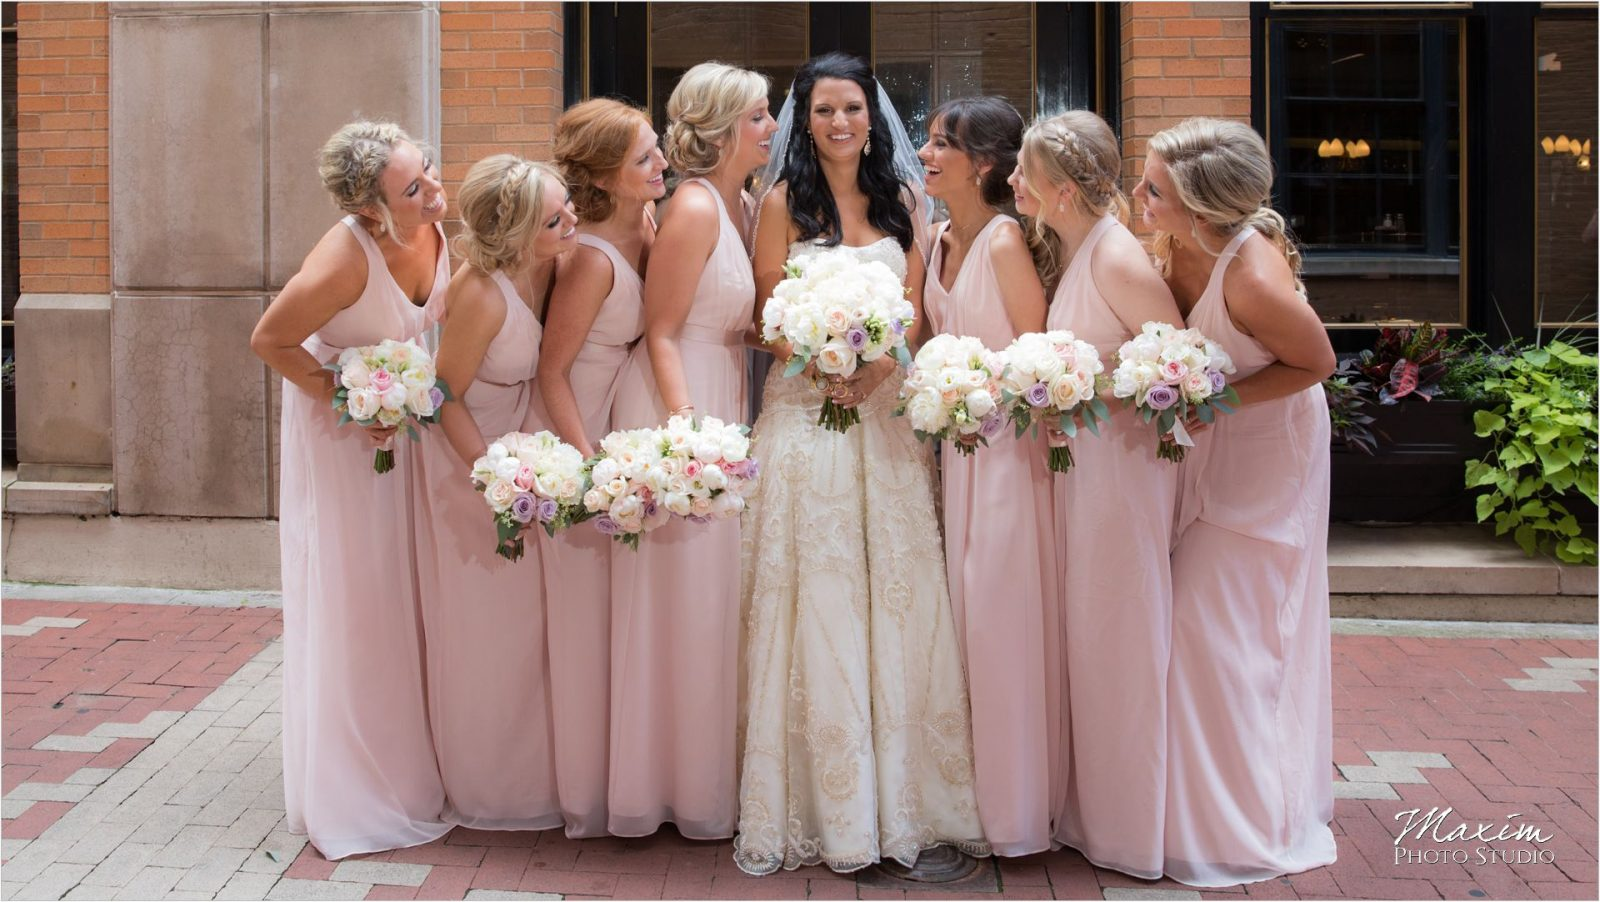 Nicholson alley Cincinnati bridesmaids pictures